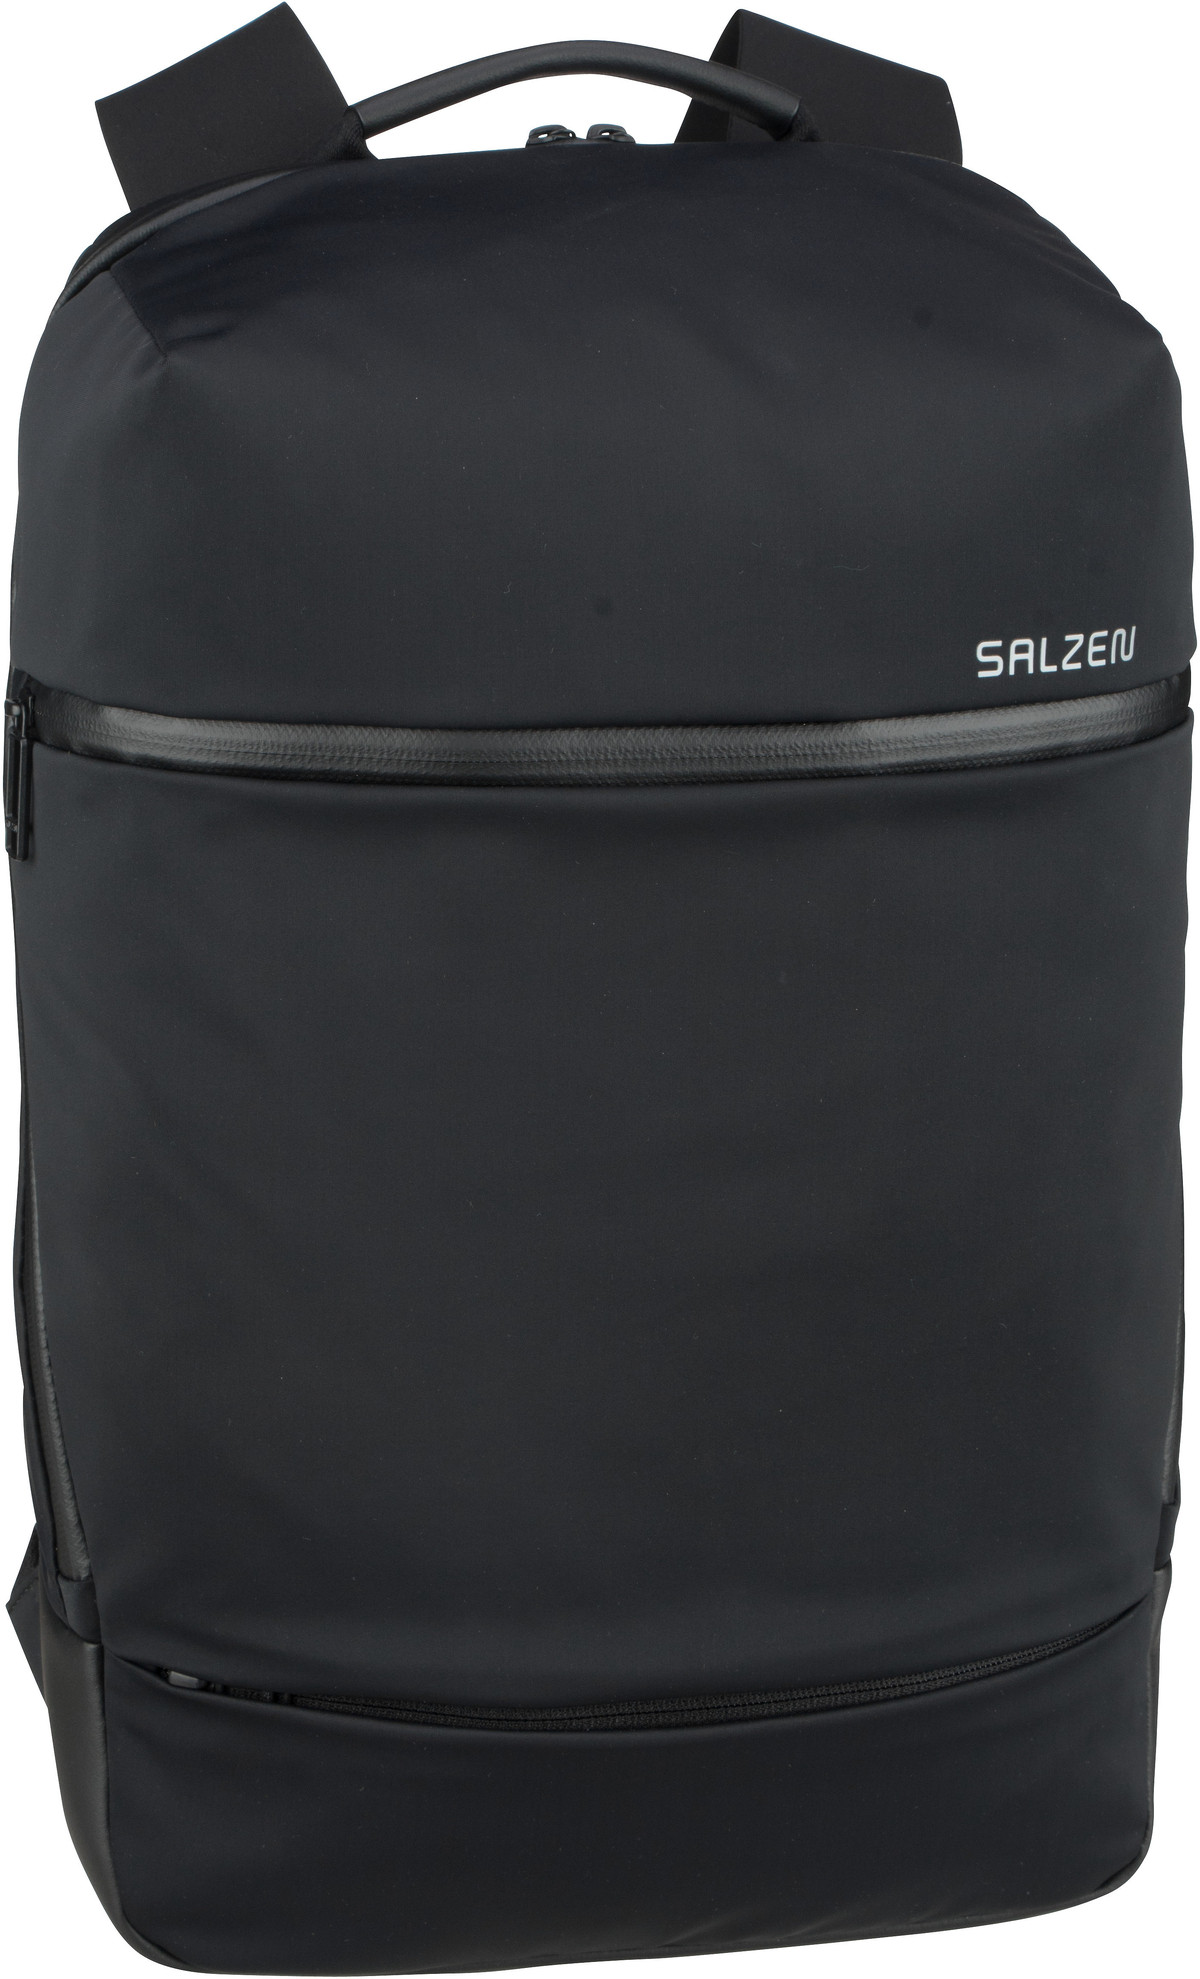 Laptoprucksack Savvy Daypack Fabric Phantom Black (15 Liter)